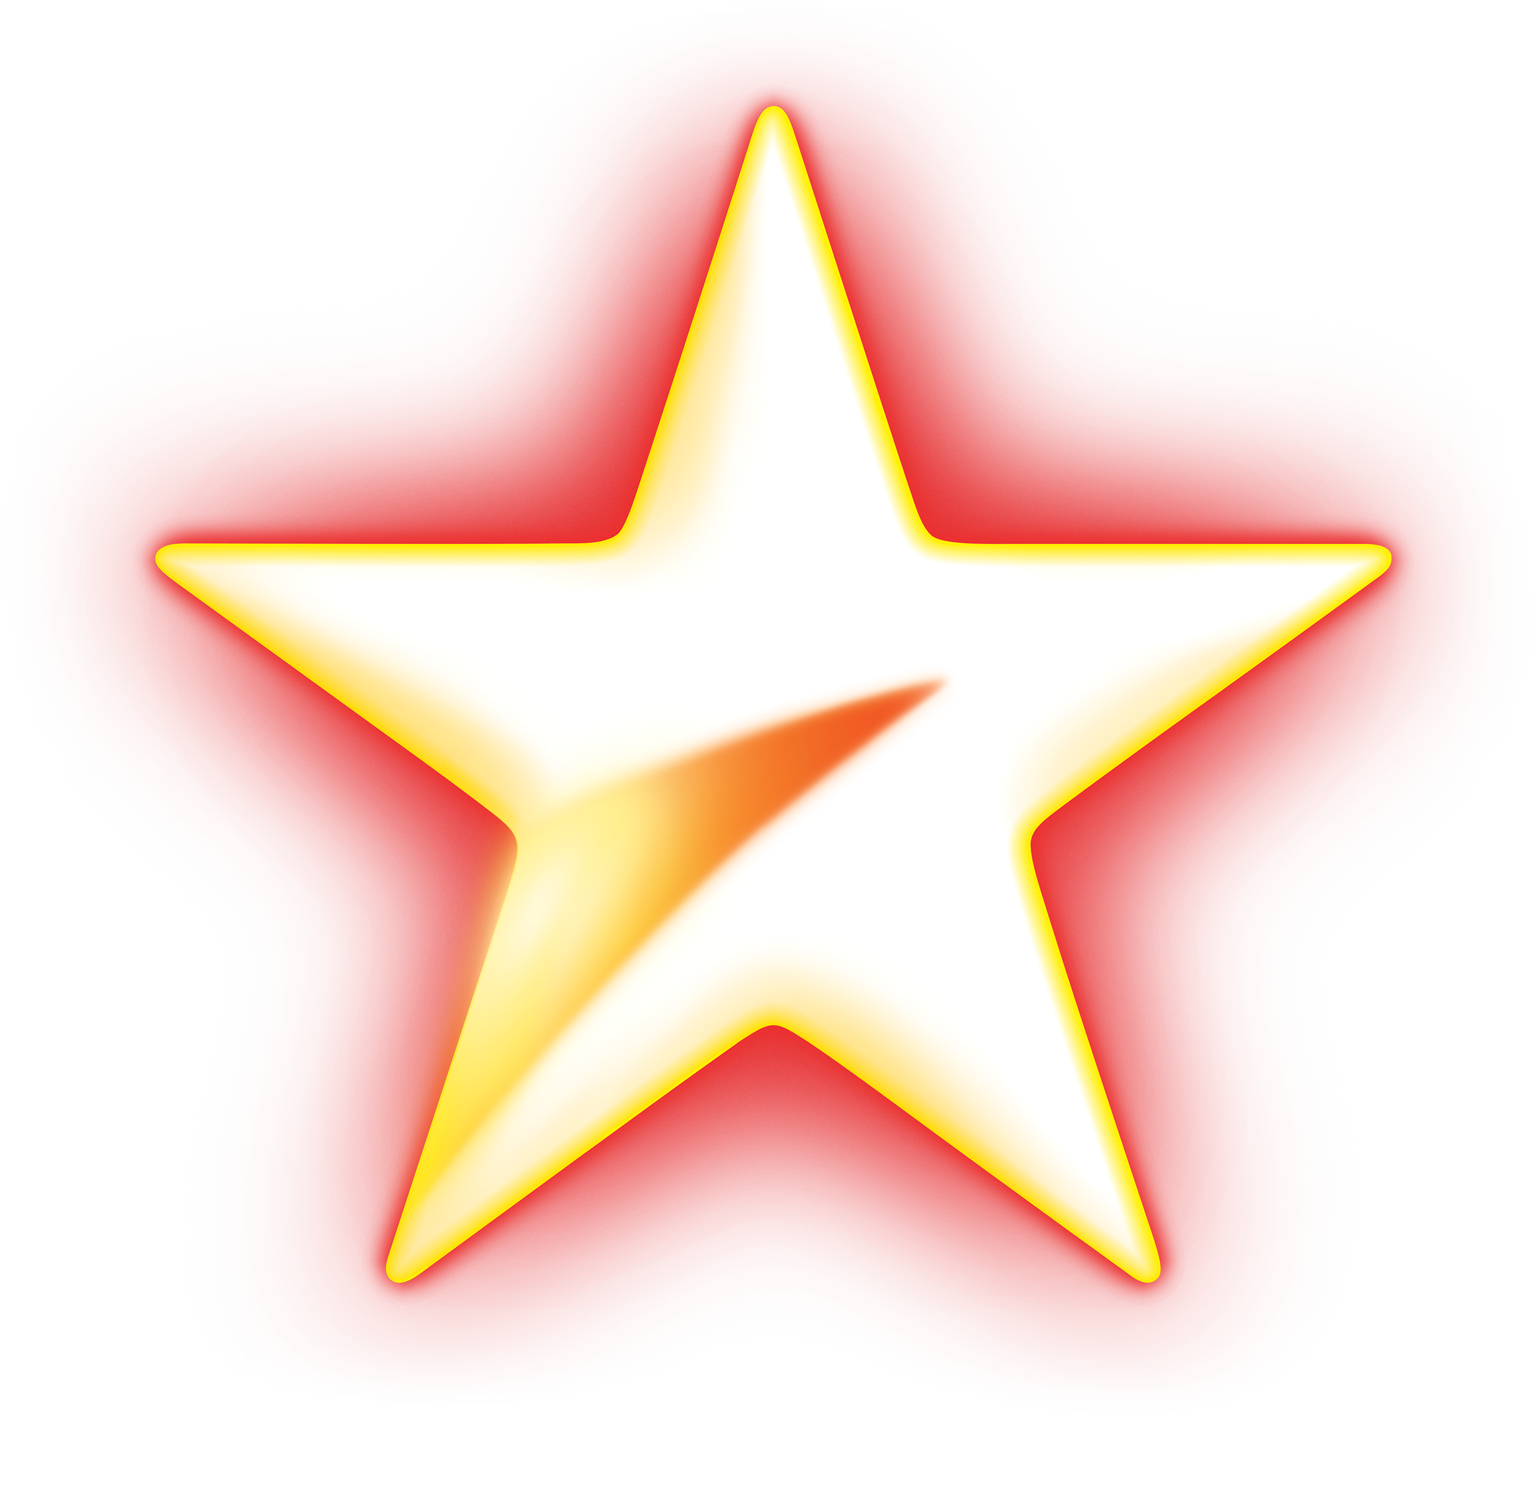 Stars hd transparent pluspng. Star images png